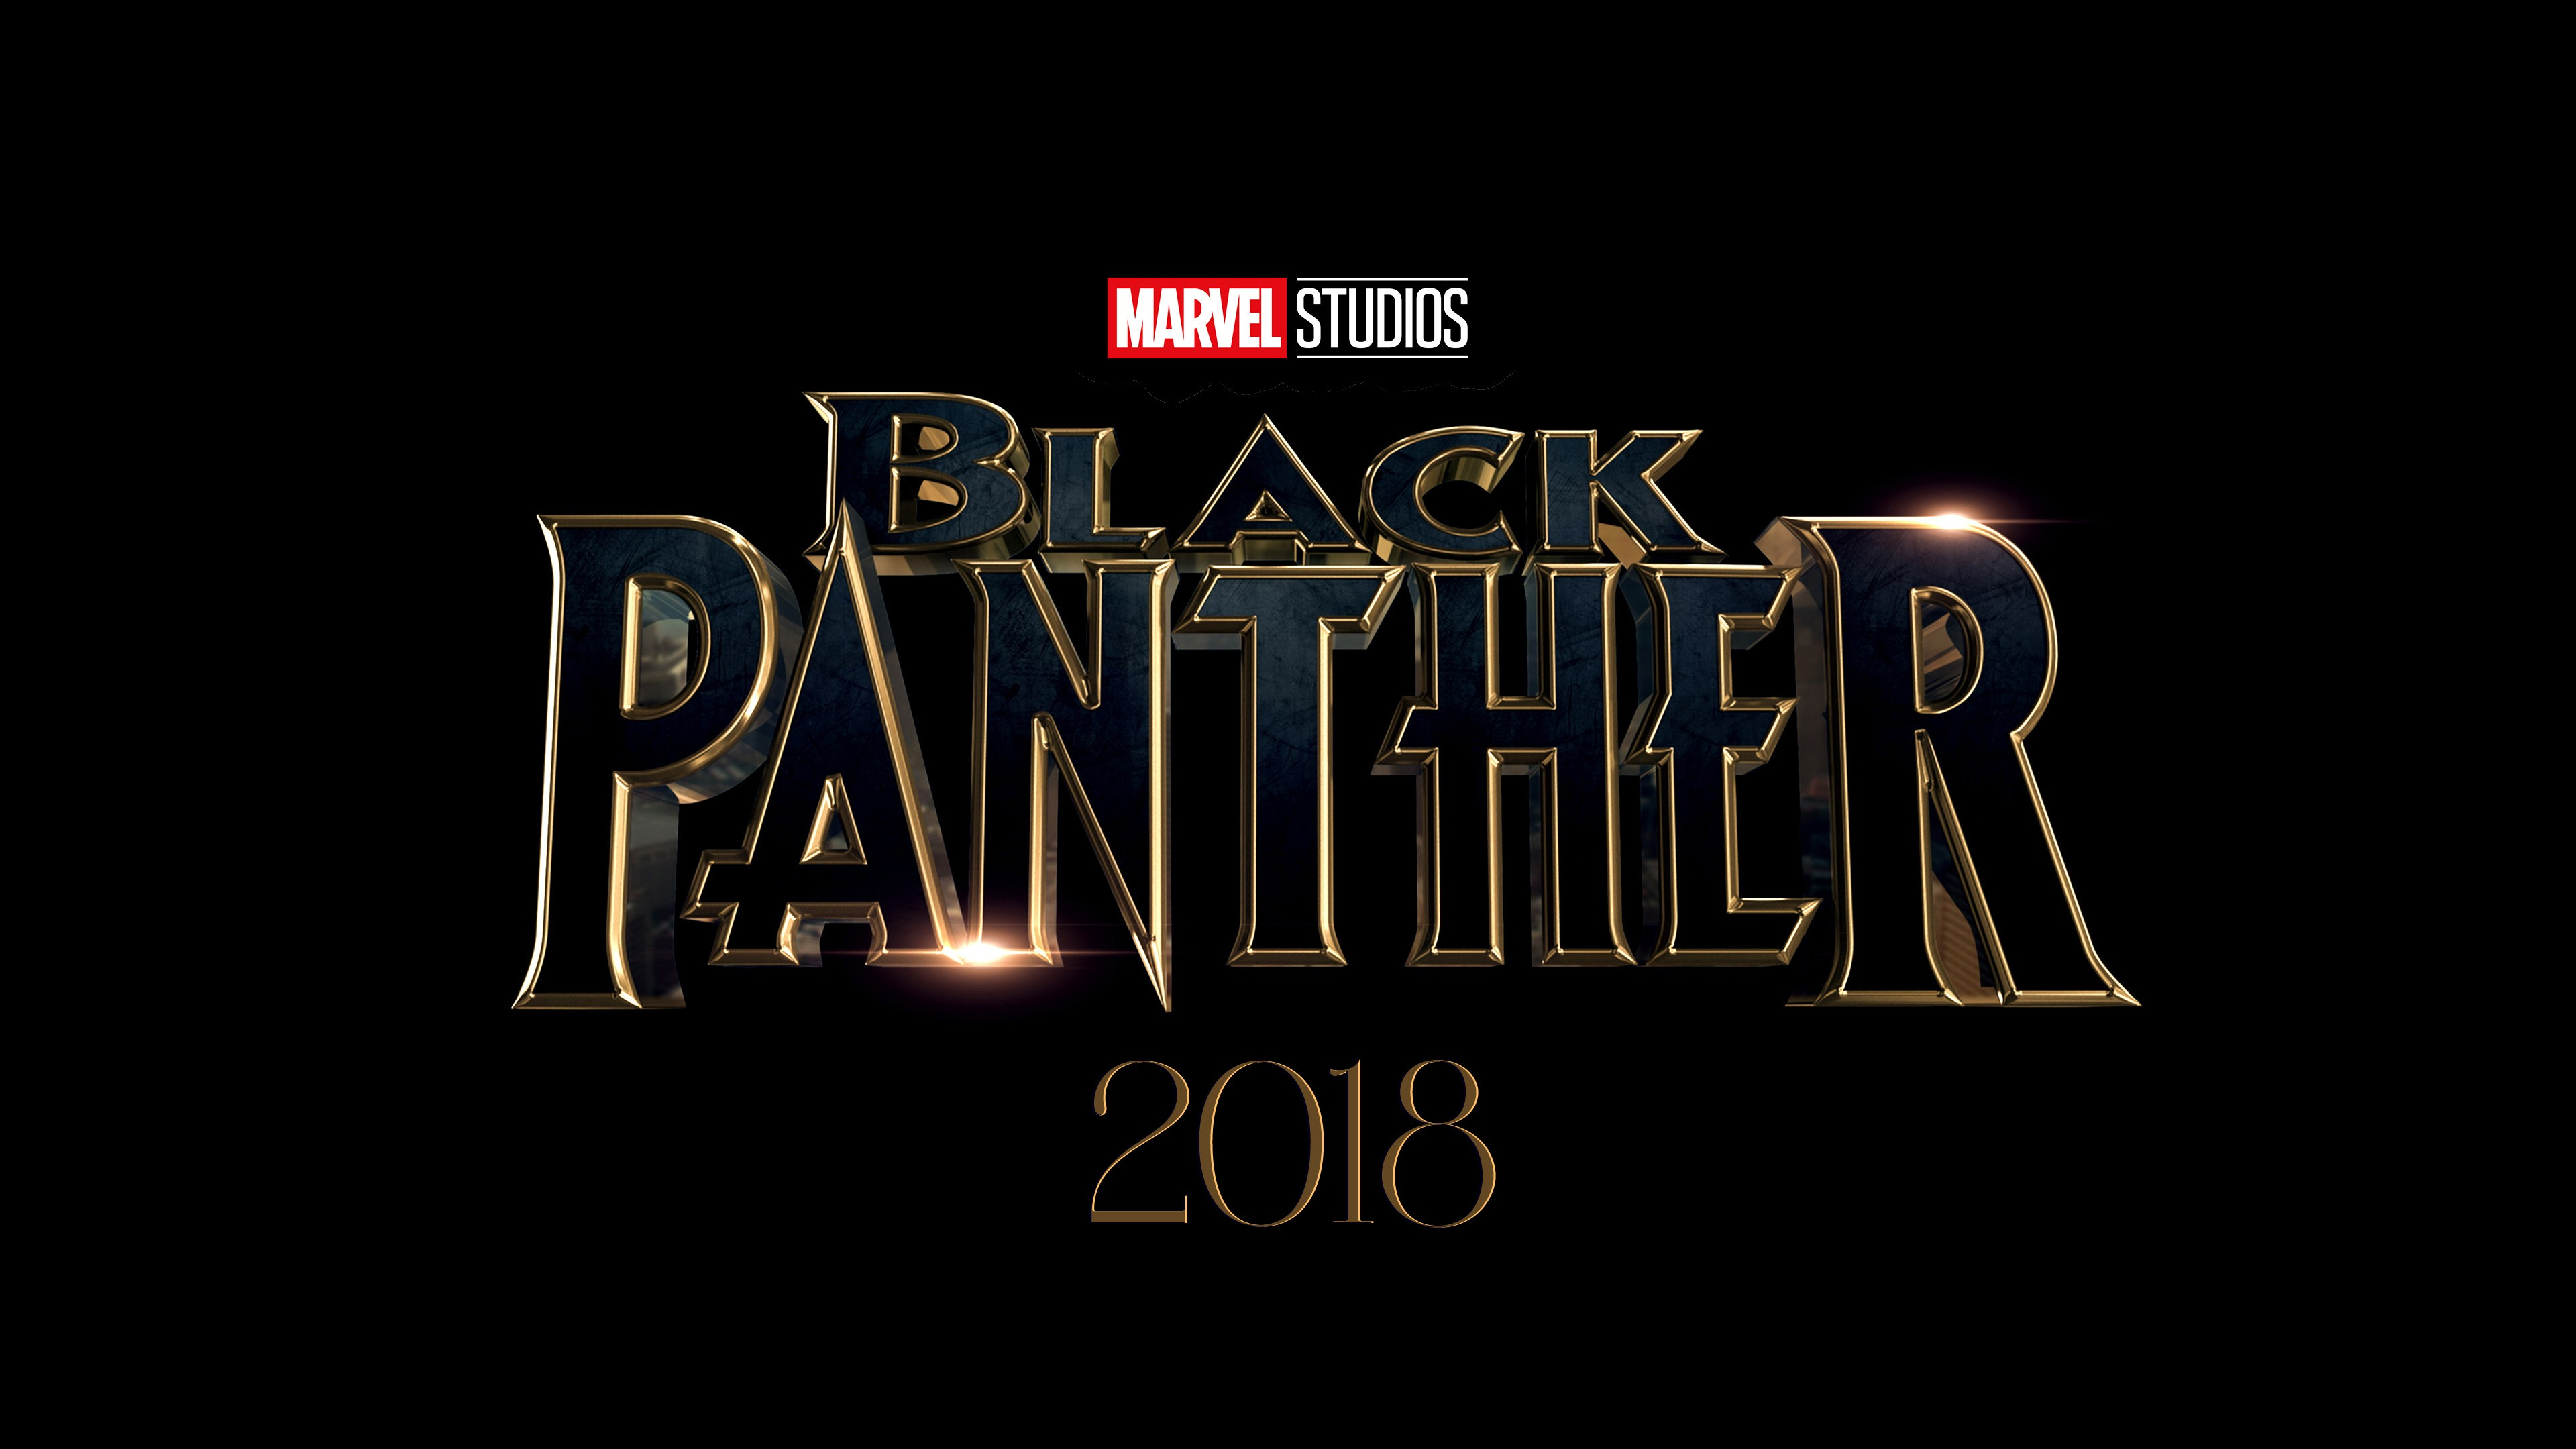 Wallpaper black panther 4k 2018 poster movies 13660 for Wallpaper home 2018